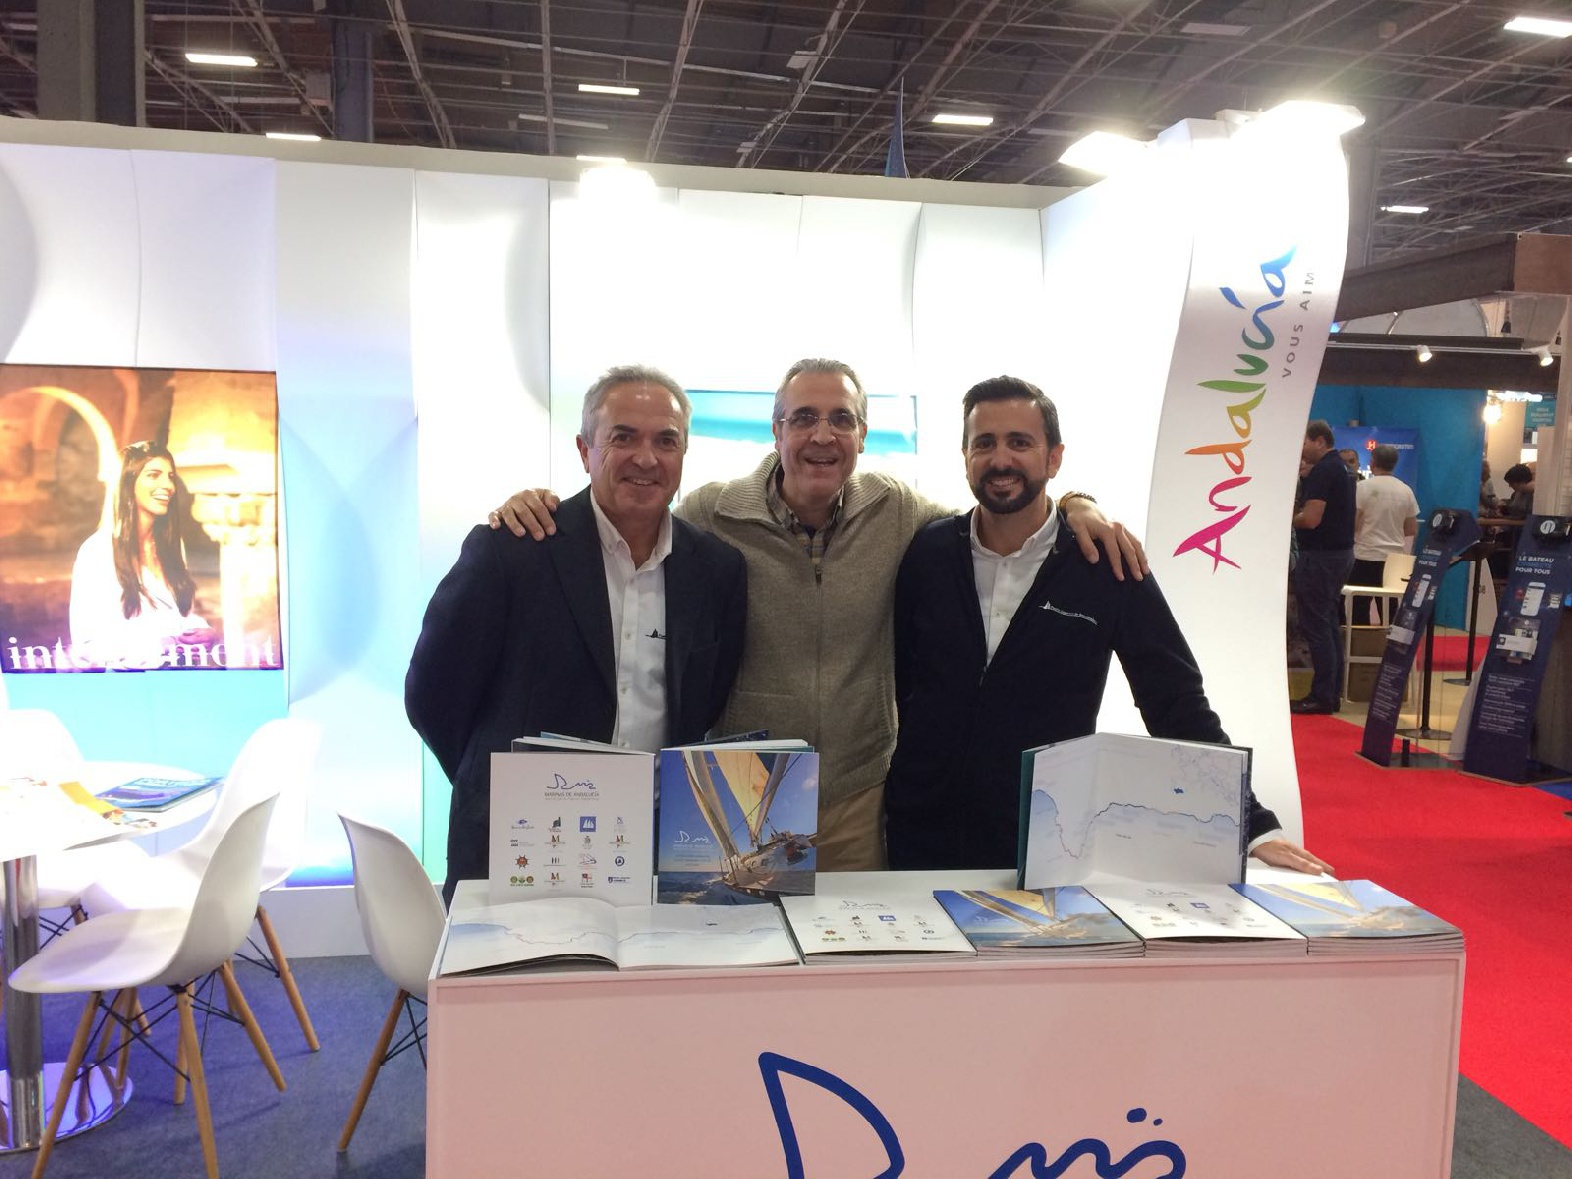 Marinas de Andalucía visits the London Boat Show